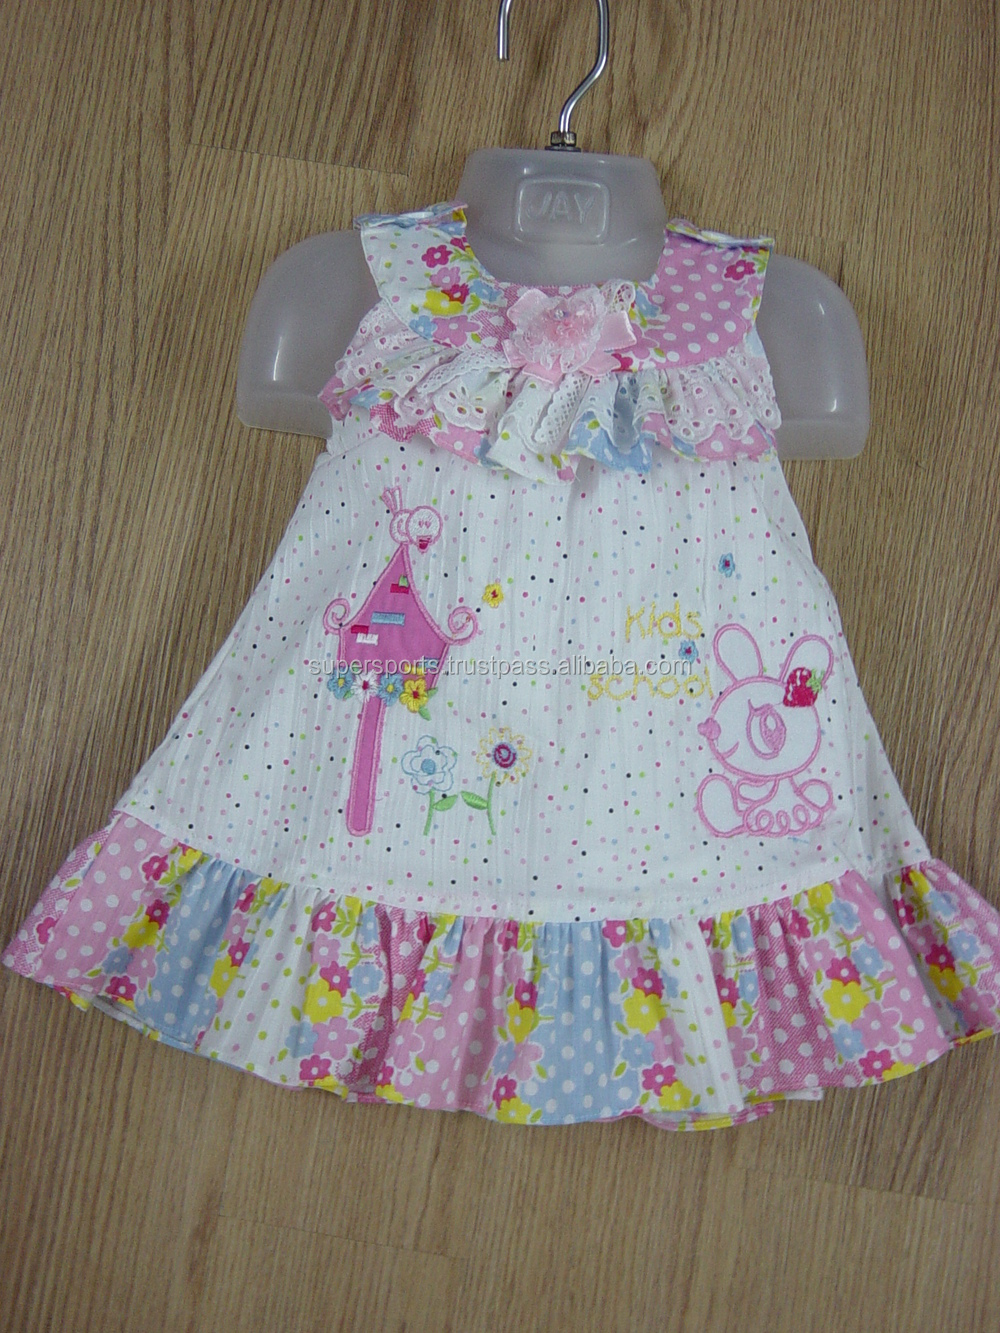 8b751f3c6745 Most Fashionable Girls Cotton Frock - Buy Girls Fashionable Cotton ...